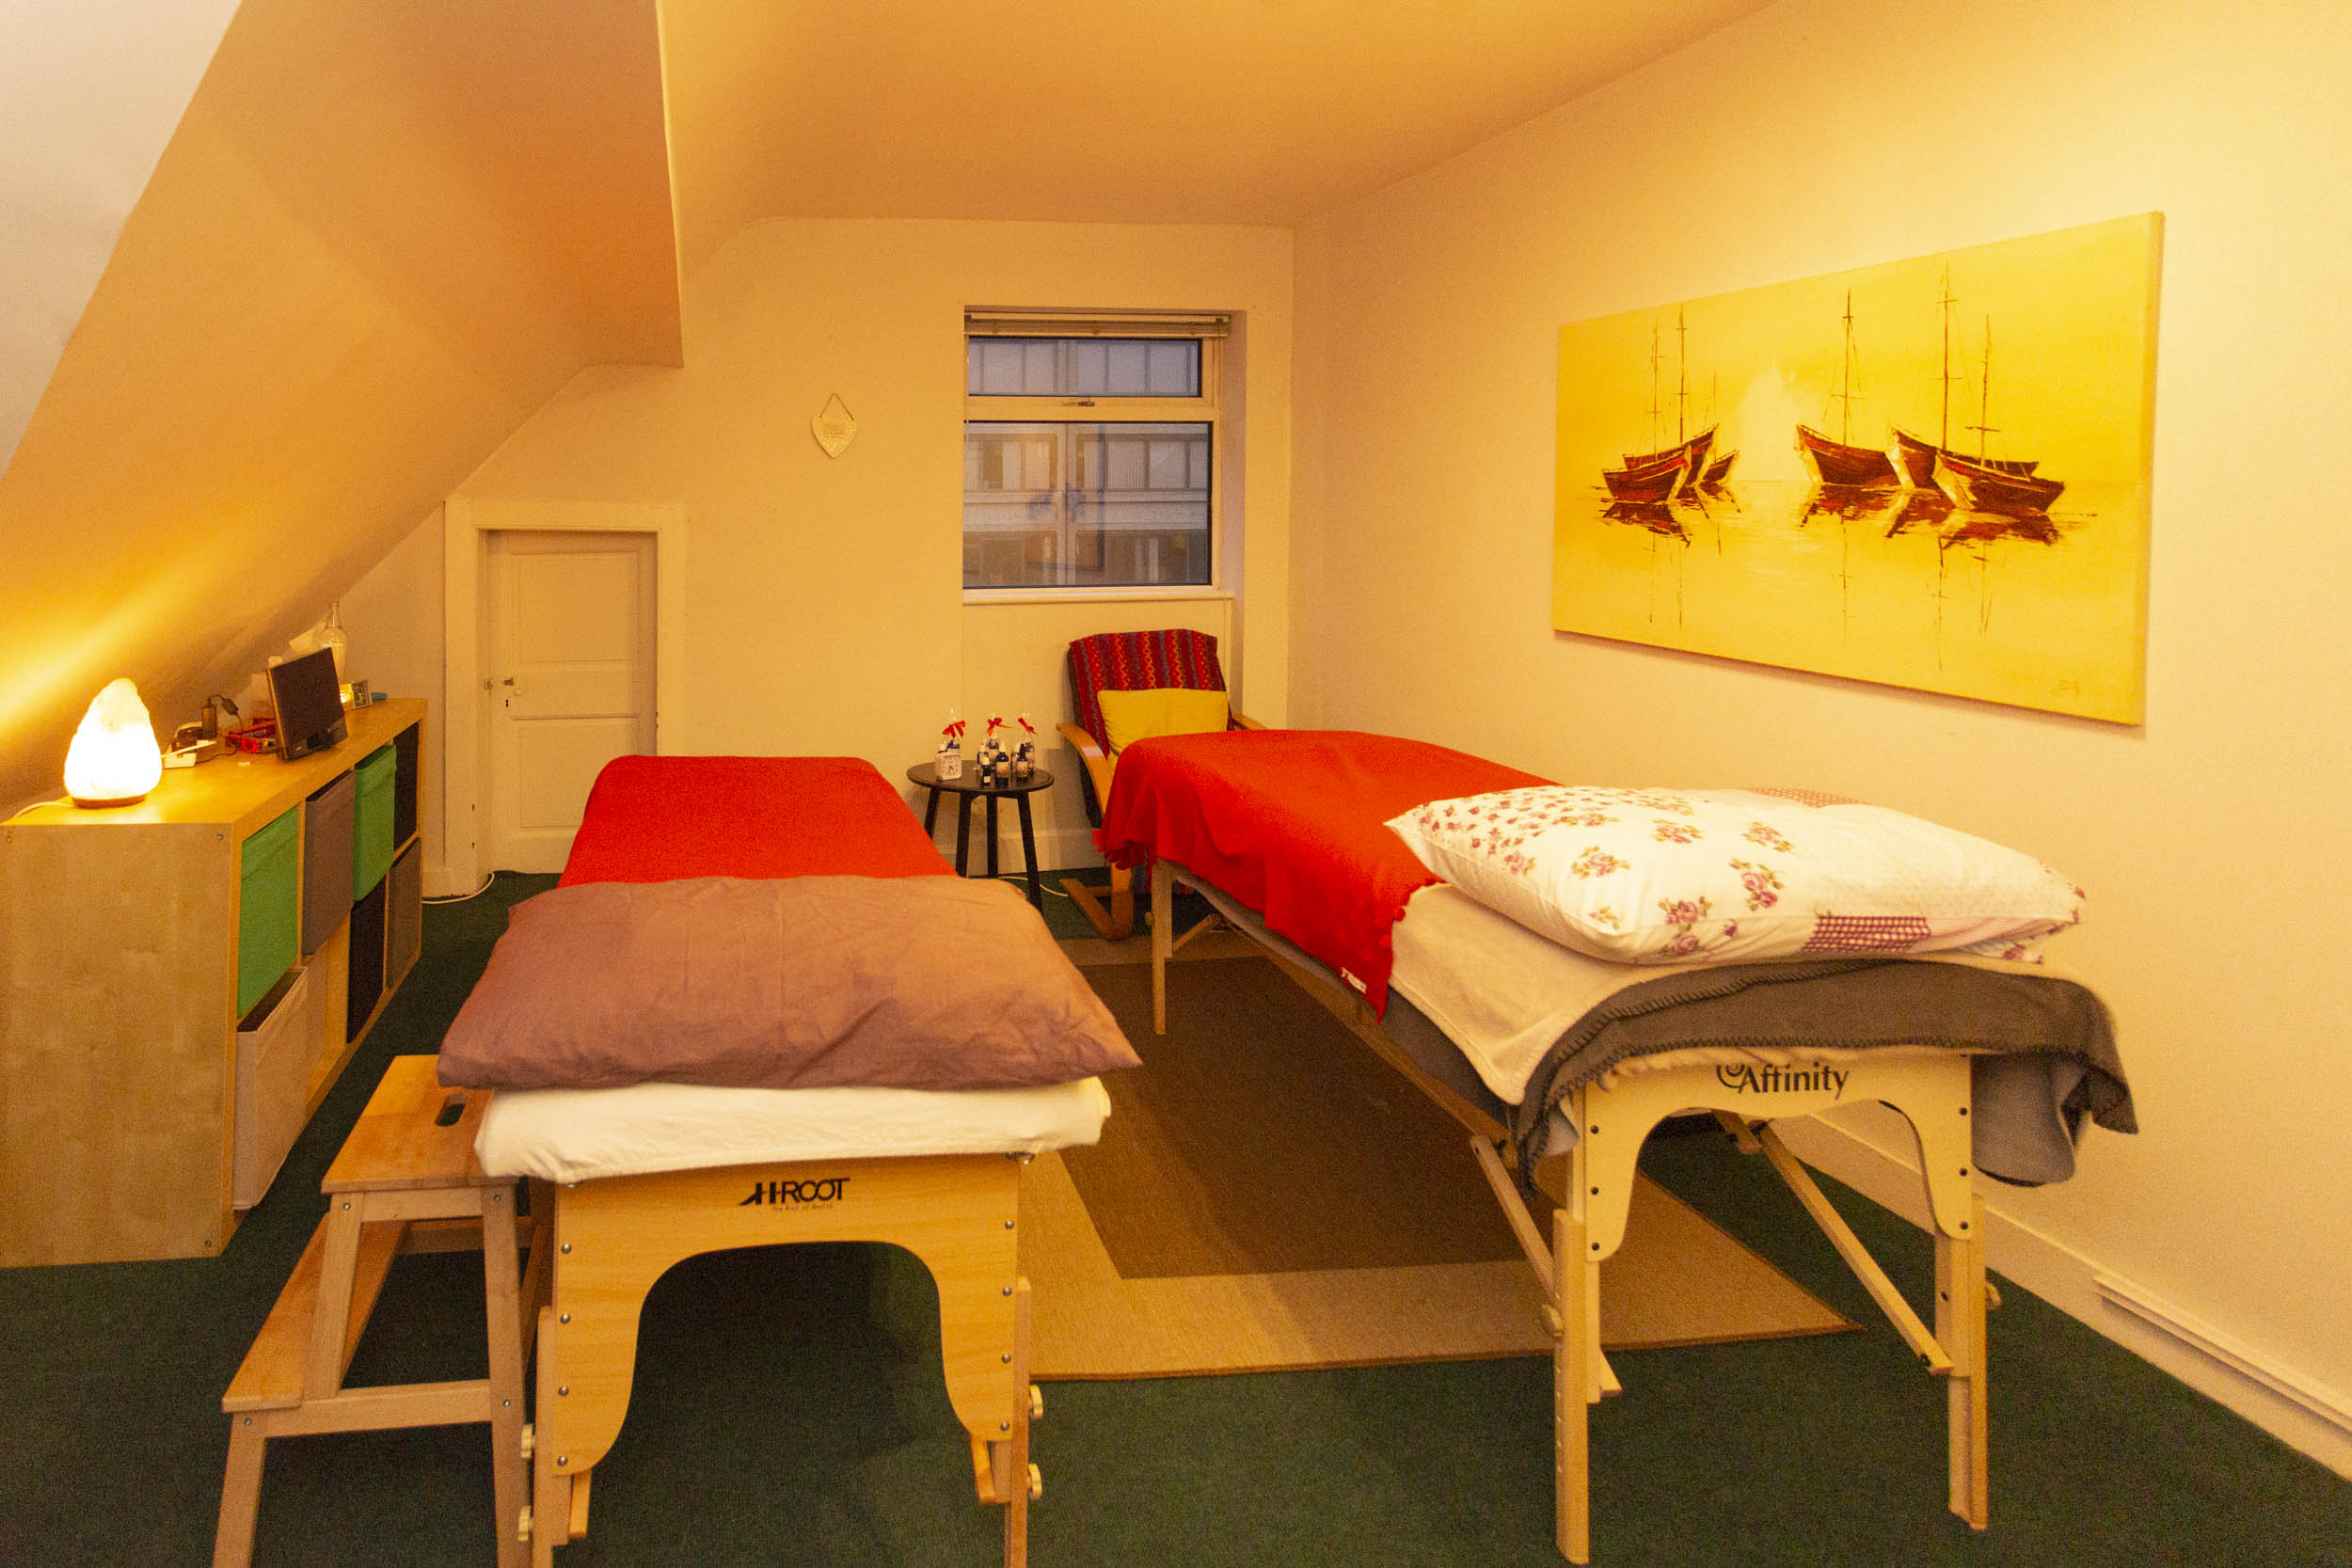 The Dublin Wellbeing Centre Massage